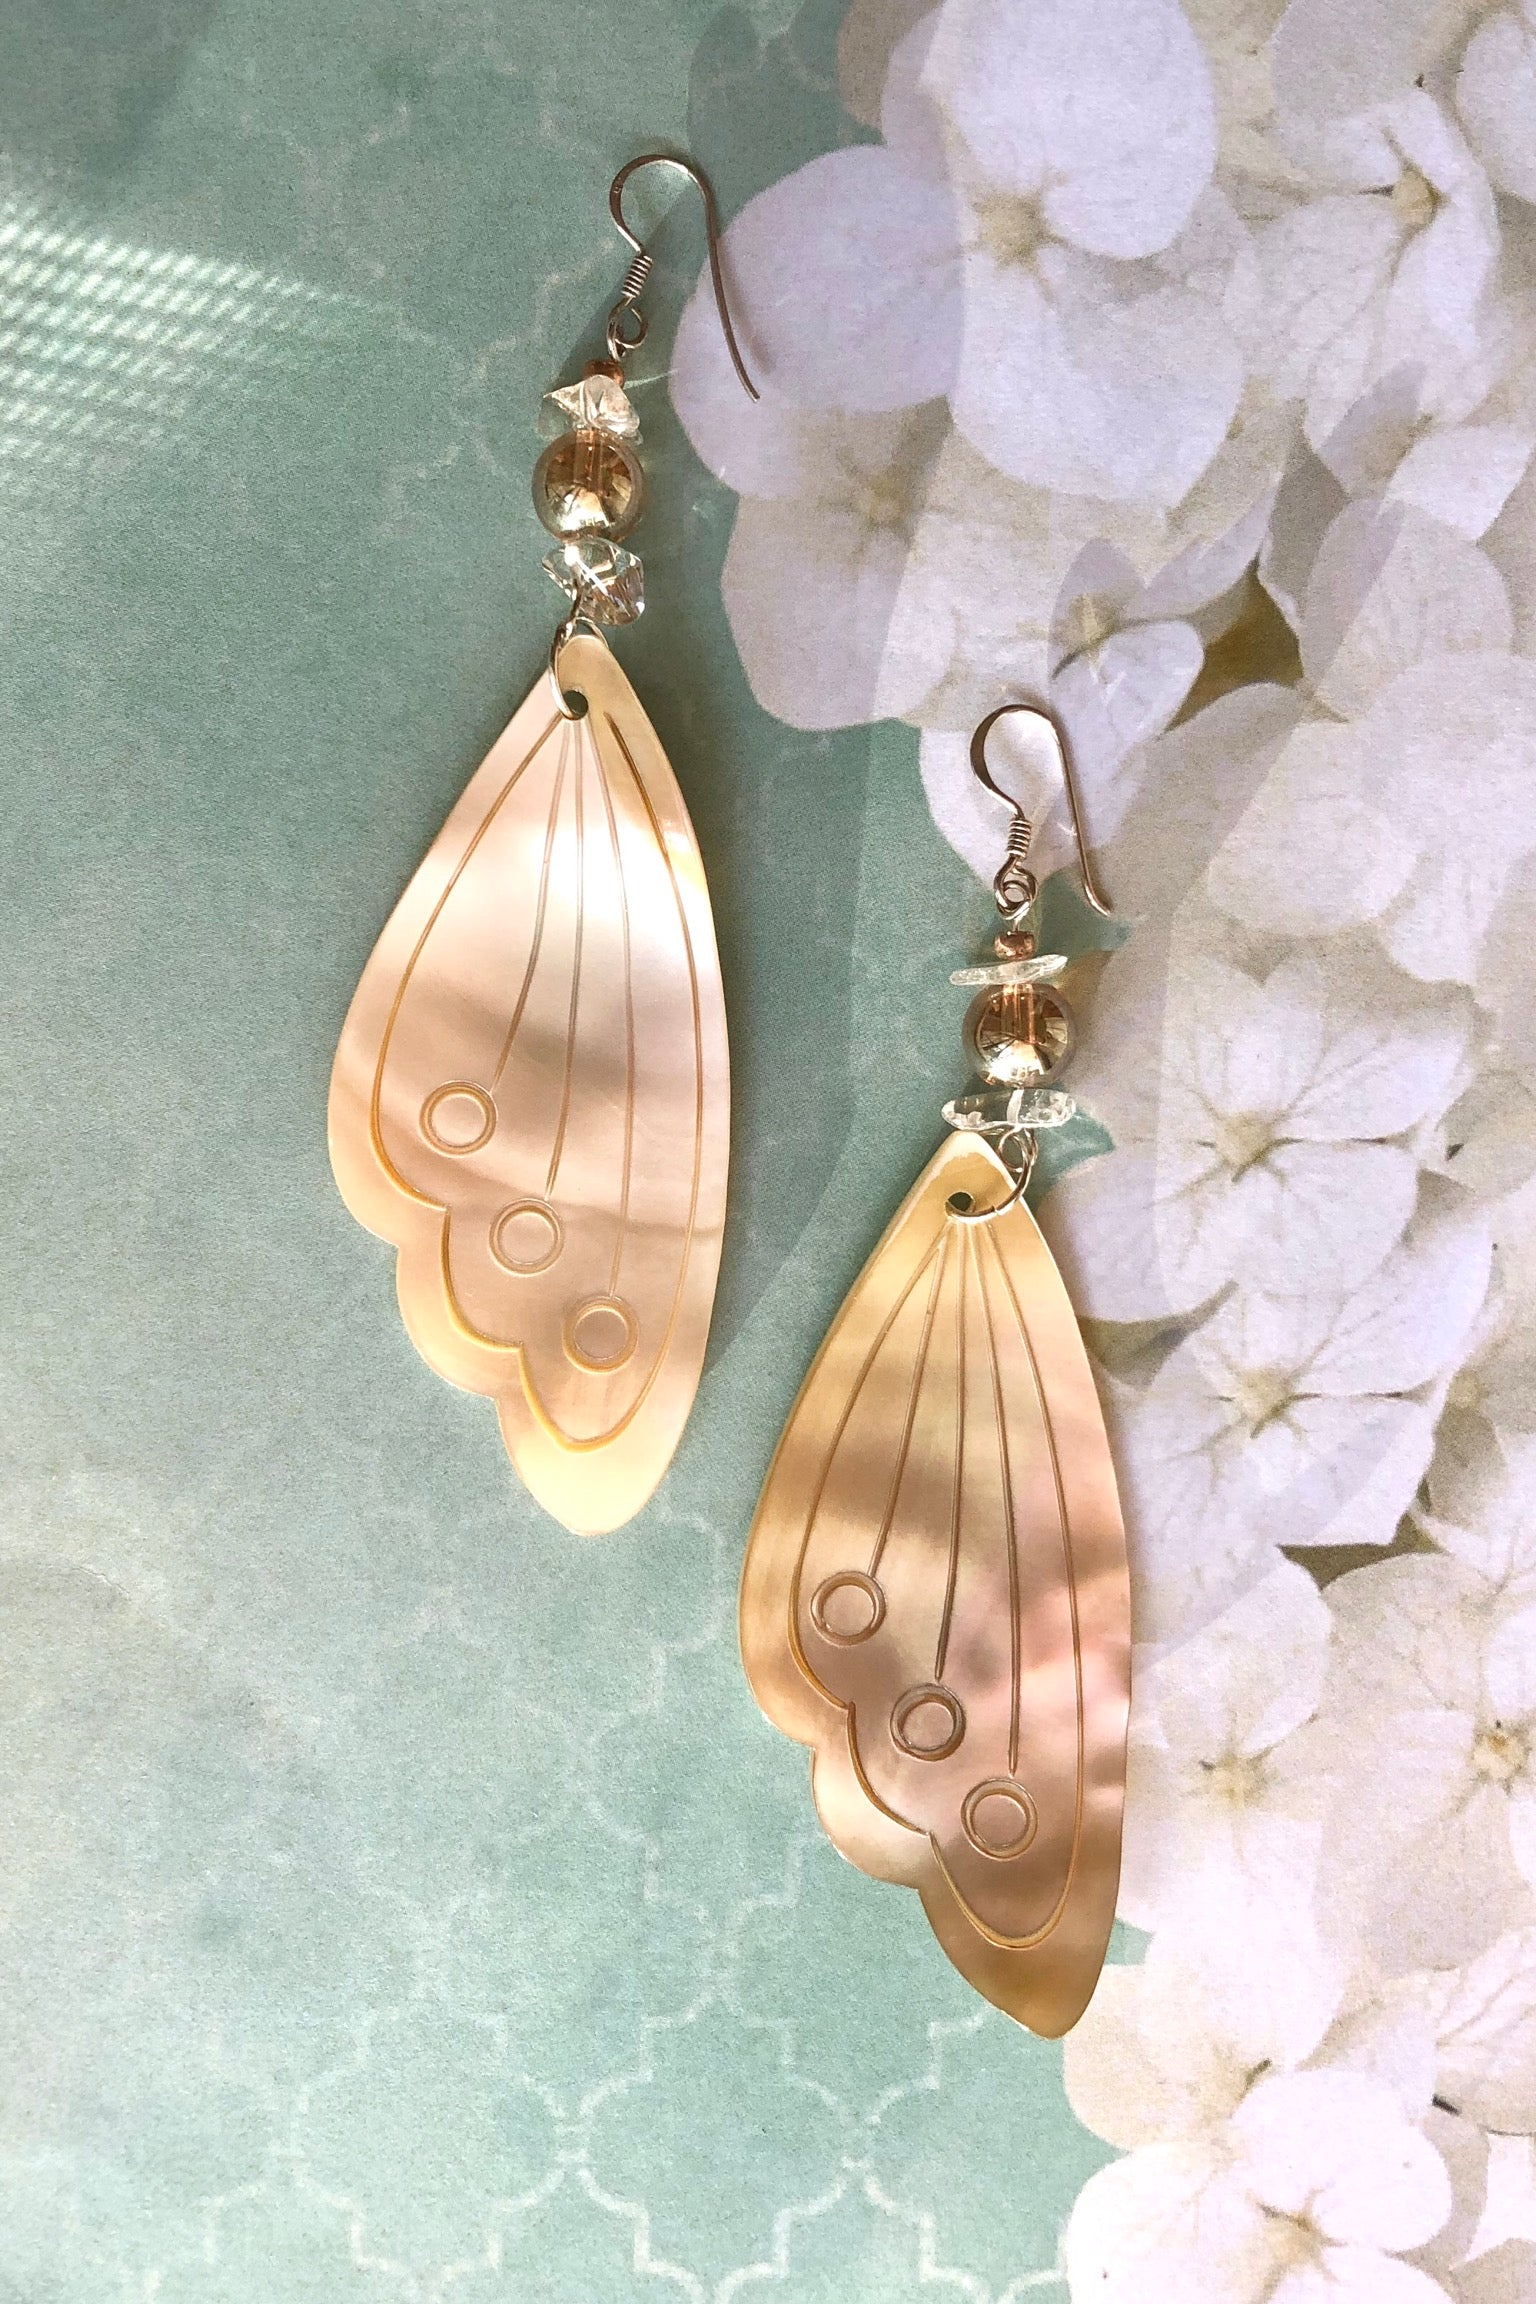 The Serendipity Earrings Butterfly Wing Shell Pale Gold are handmade exclusively for us. The gorgeous pale gold Mother of Pearl wing has been hand cut and polished.